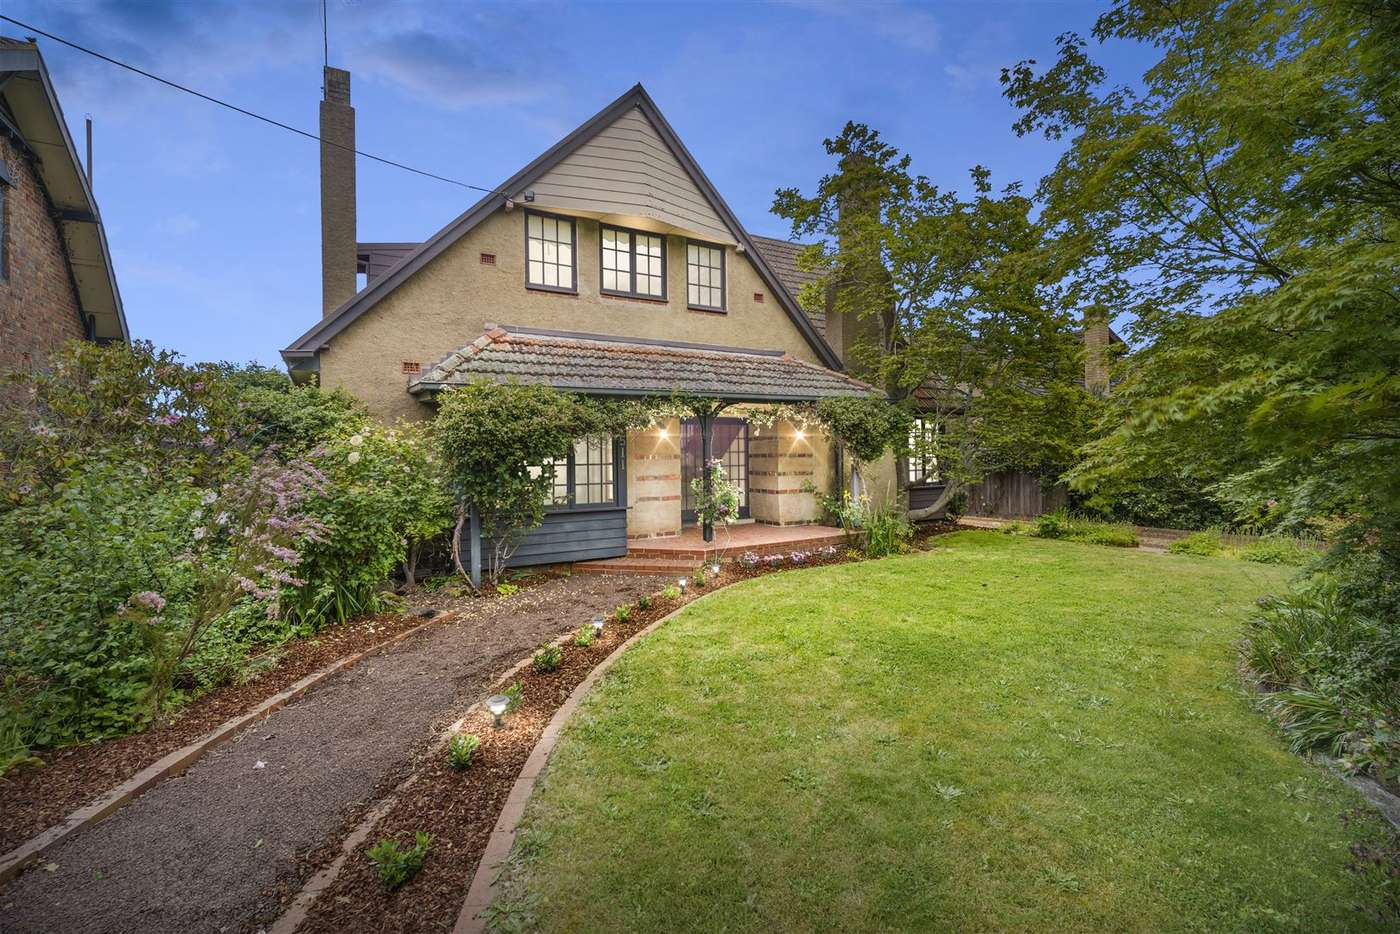 Main view of Homely house listing, 1511 Sturt Street, Newington VIC 3350